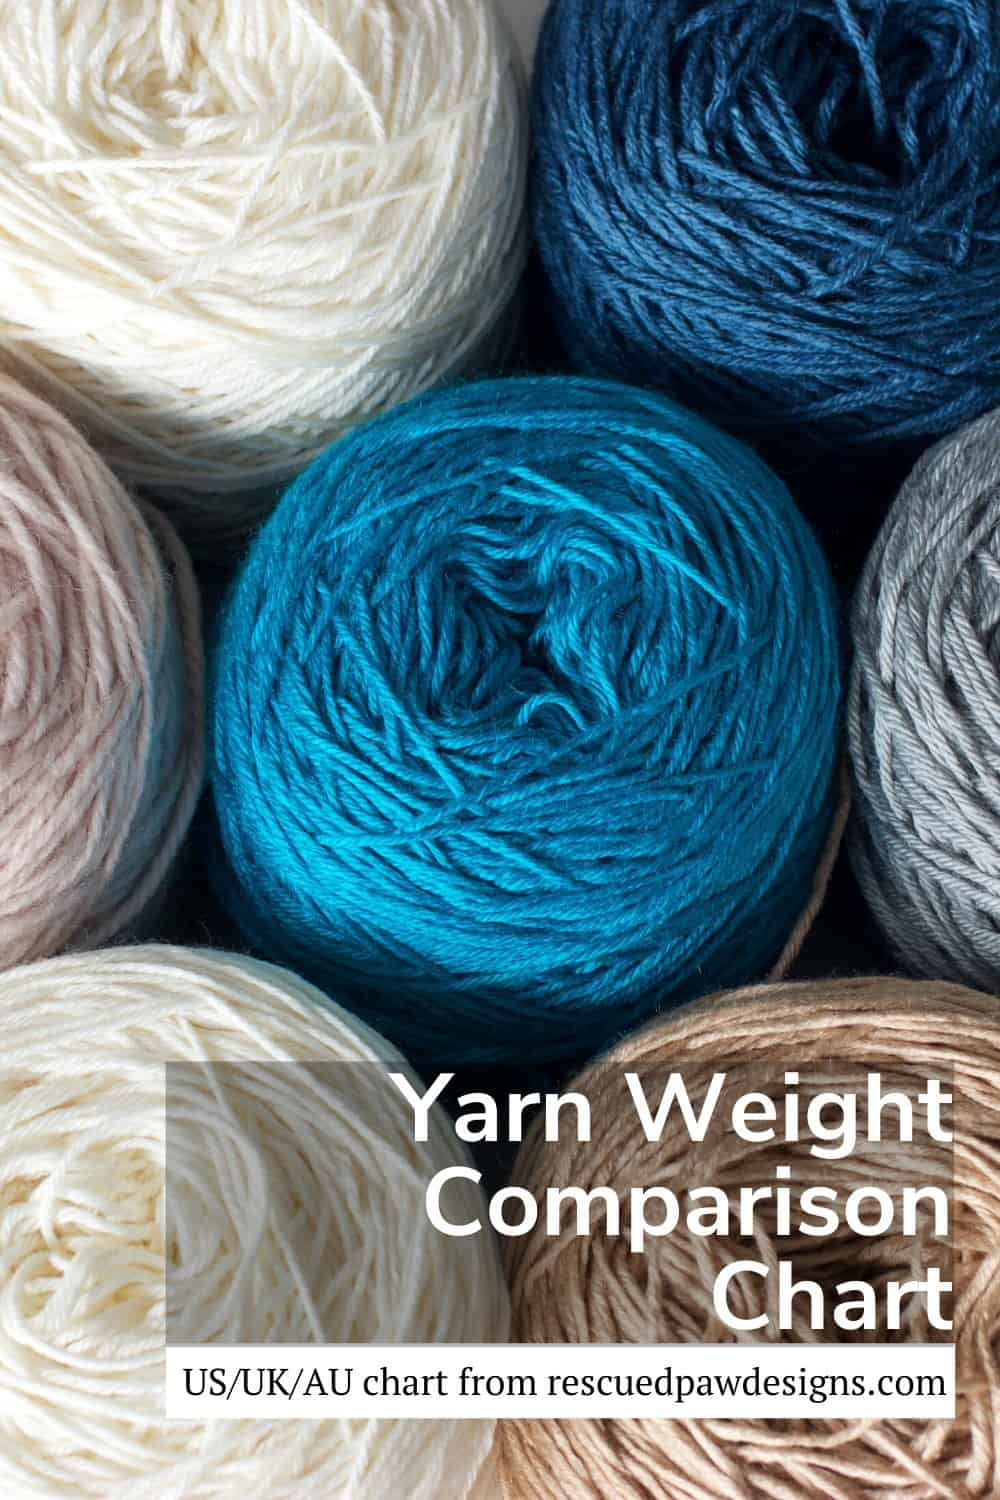 Yarn Weight Comparision Chart